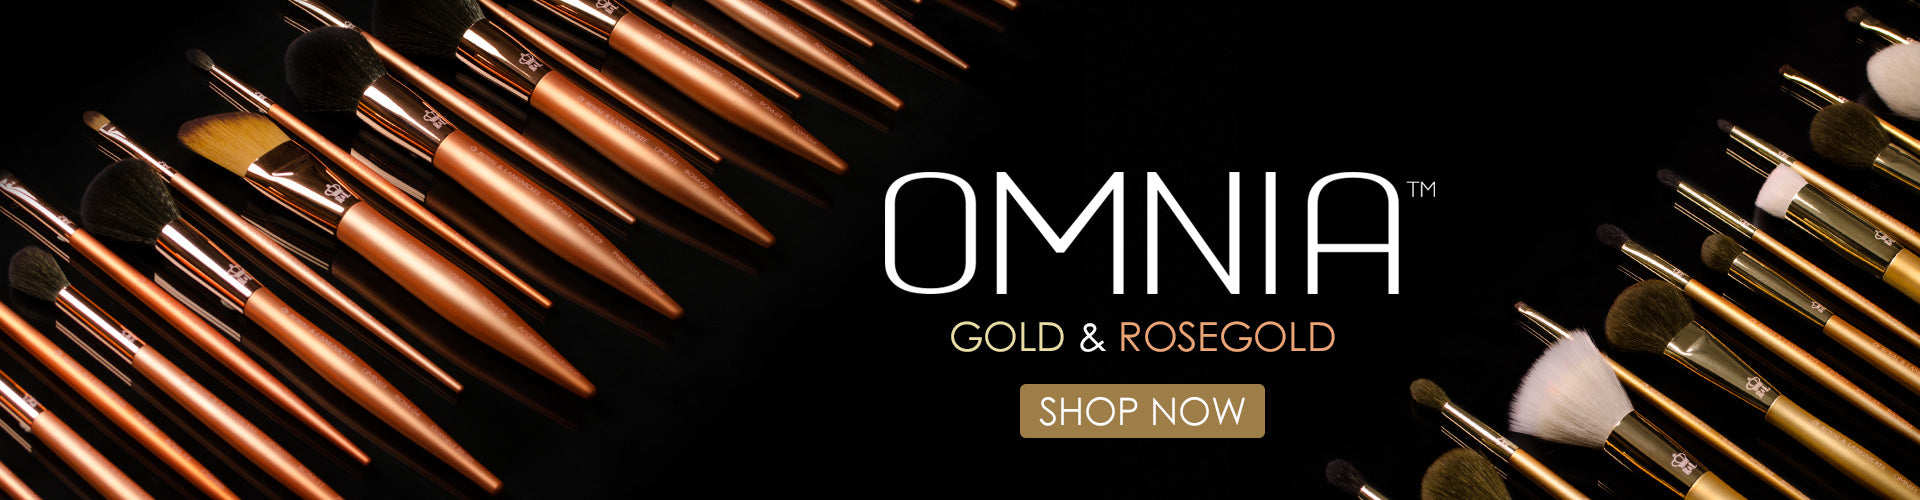 Omnia - Now Available!